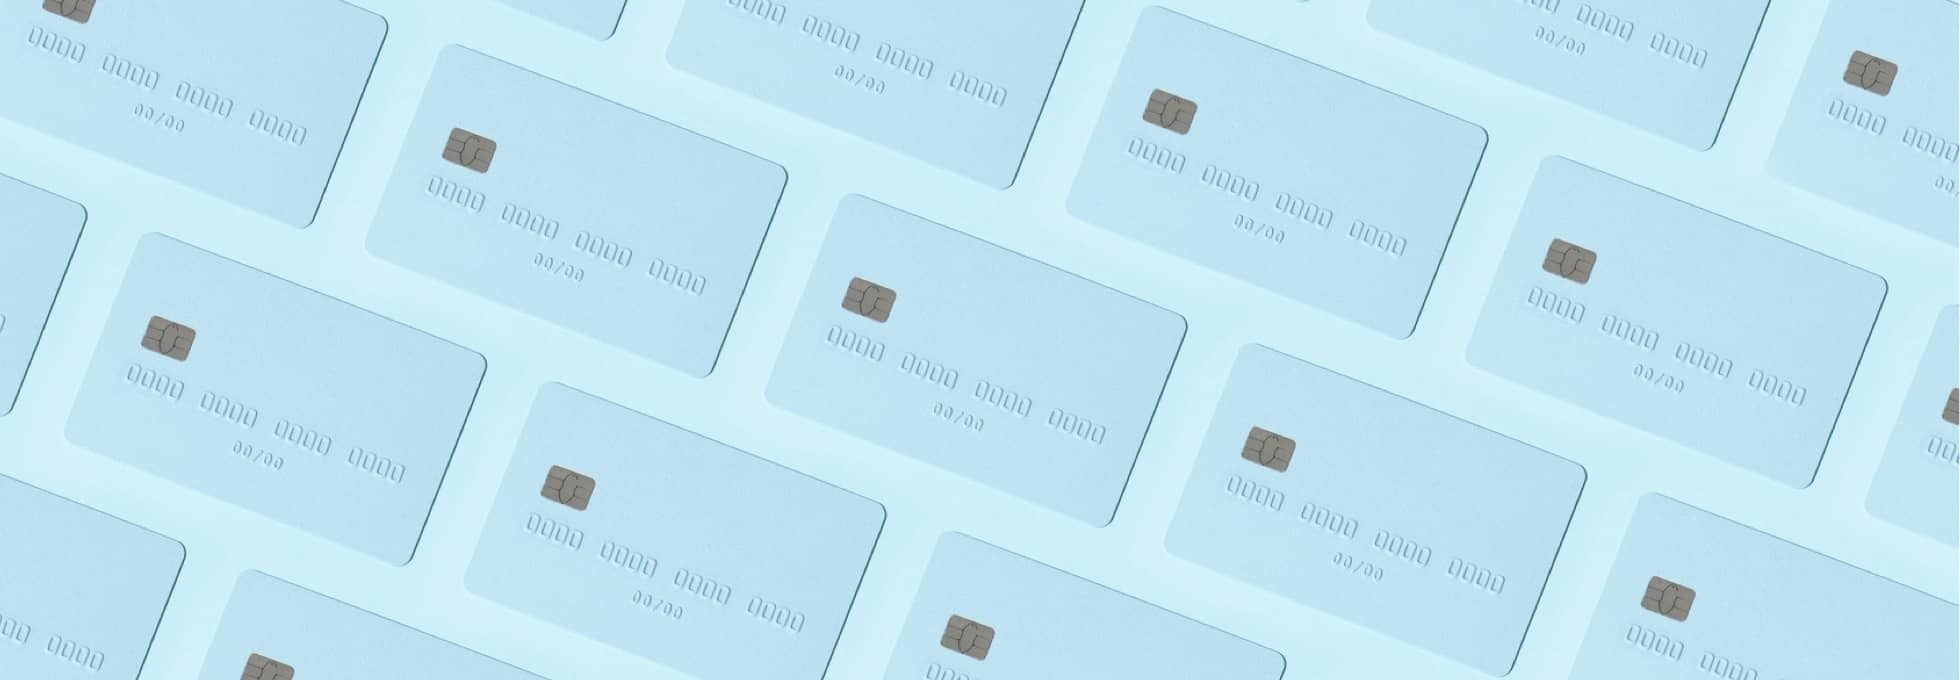 Repeated image of blank credit cards